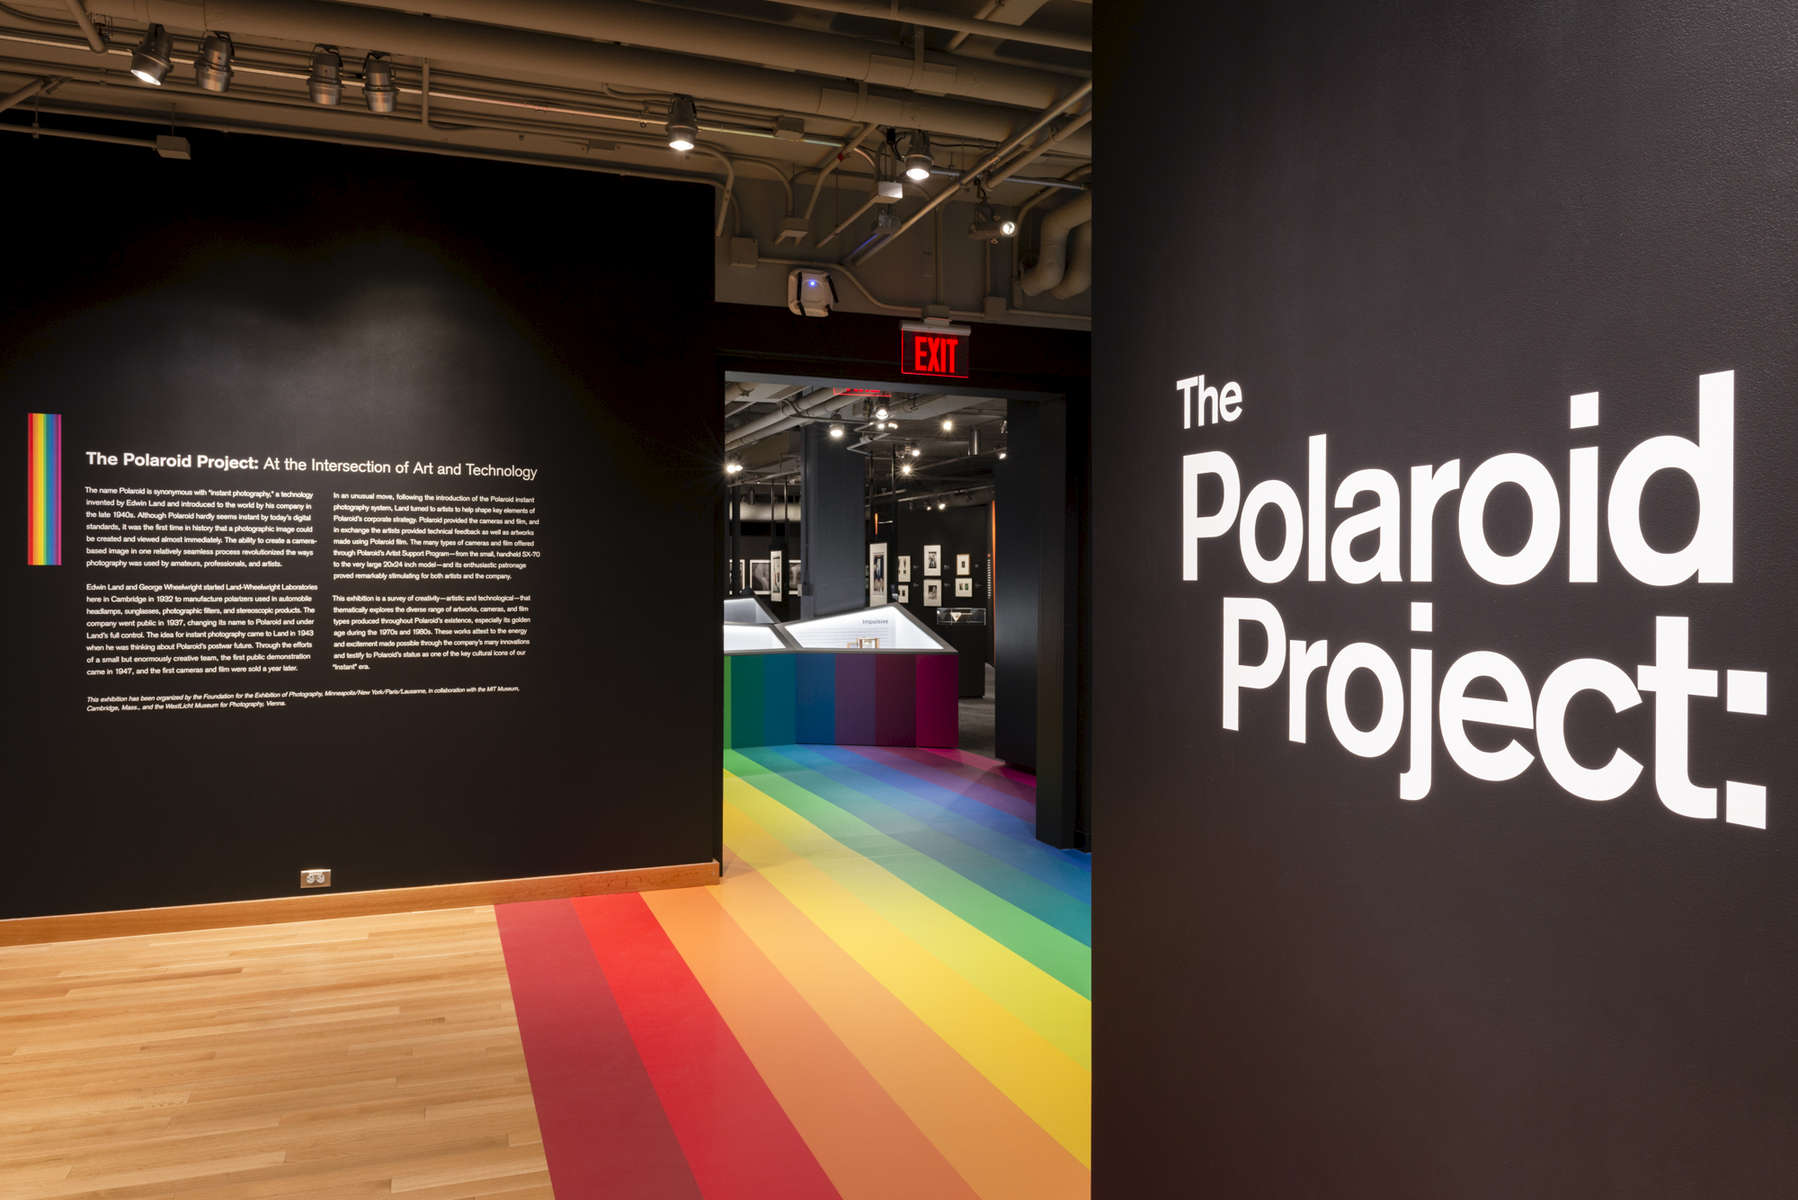 """The Polaroid Project: At the Intersection of Art and Technology was an exhibition in two adjacent gallery spaces that explored various dimensions of the relationship between the art and technology of Polaroids, with over 200 photographs and 100 objects. To unite the two galleries, and the art and the technology, the iconic Polaroid spectrum rainbow logo was translated into a continuous spine through the centerline of the exhibition, tying together the 2 gallery spaces, display cases, immersive seating, and a connecting wall. The display cases featured artifacts including prototypes, components, and cameras tracing the Polaroid company's many technological innovations over time. Photographs were displayed on """"baffle"""" walls inspired by the interior of a 20x24 large format instant camera, which was also prominently displayed in the exhibition.Visit the VR tour here."""